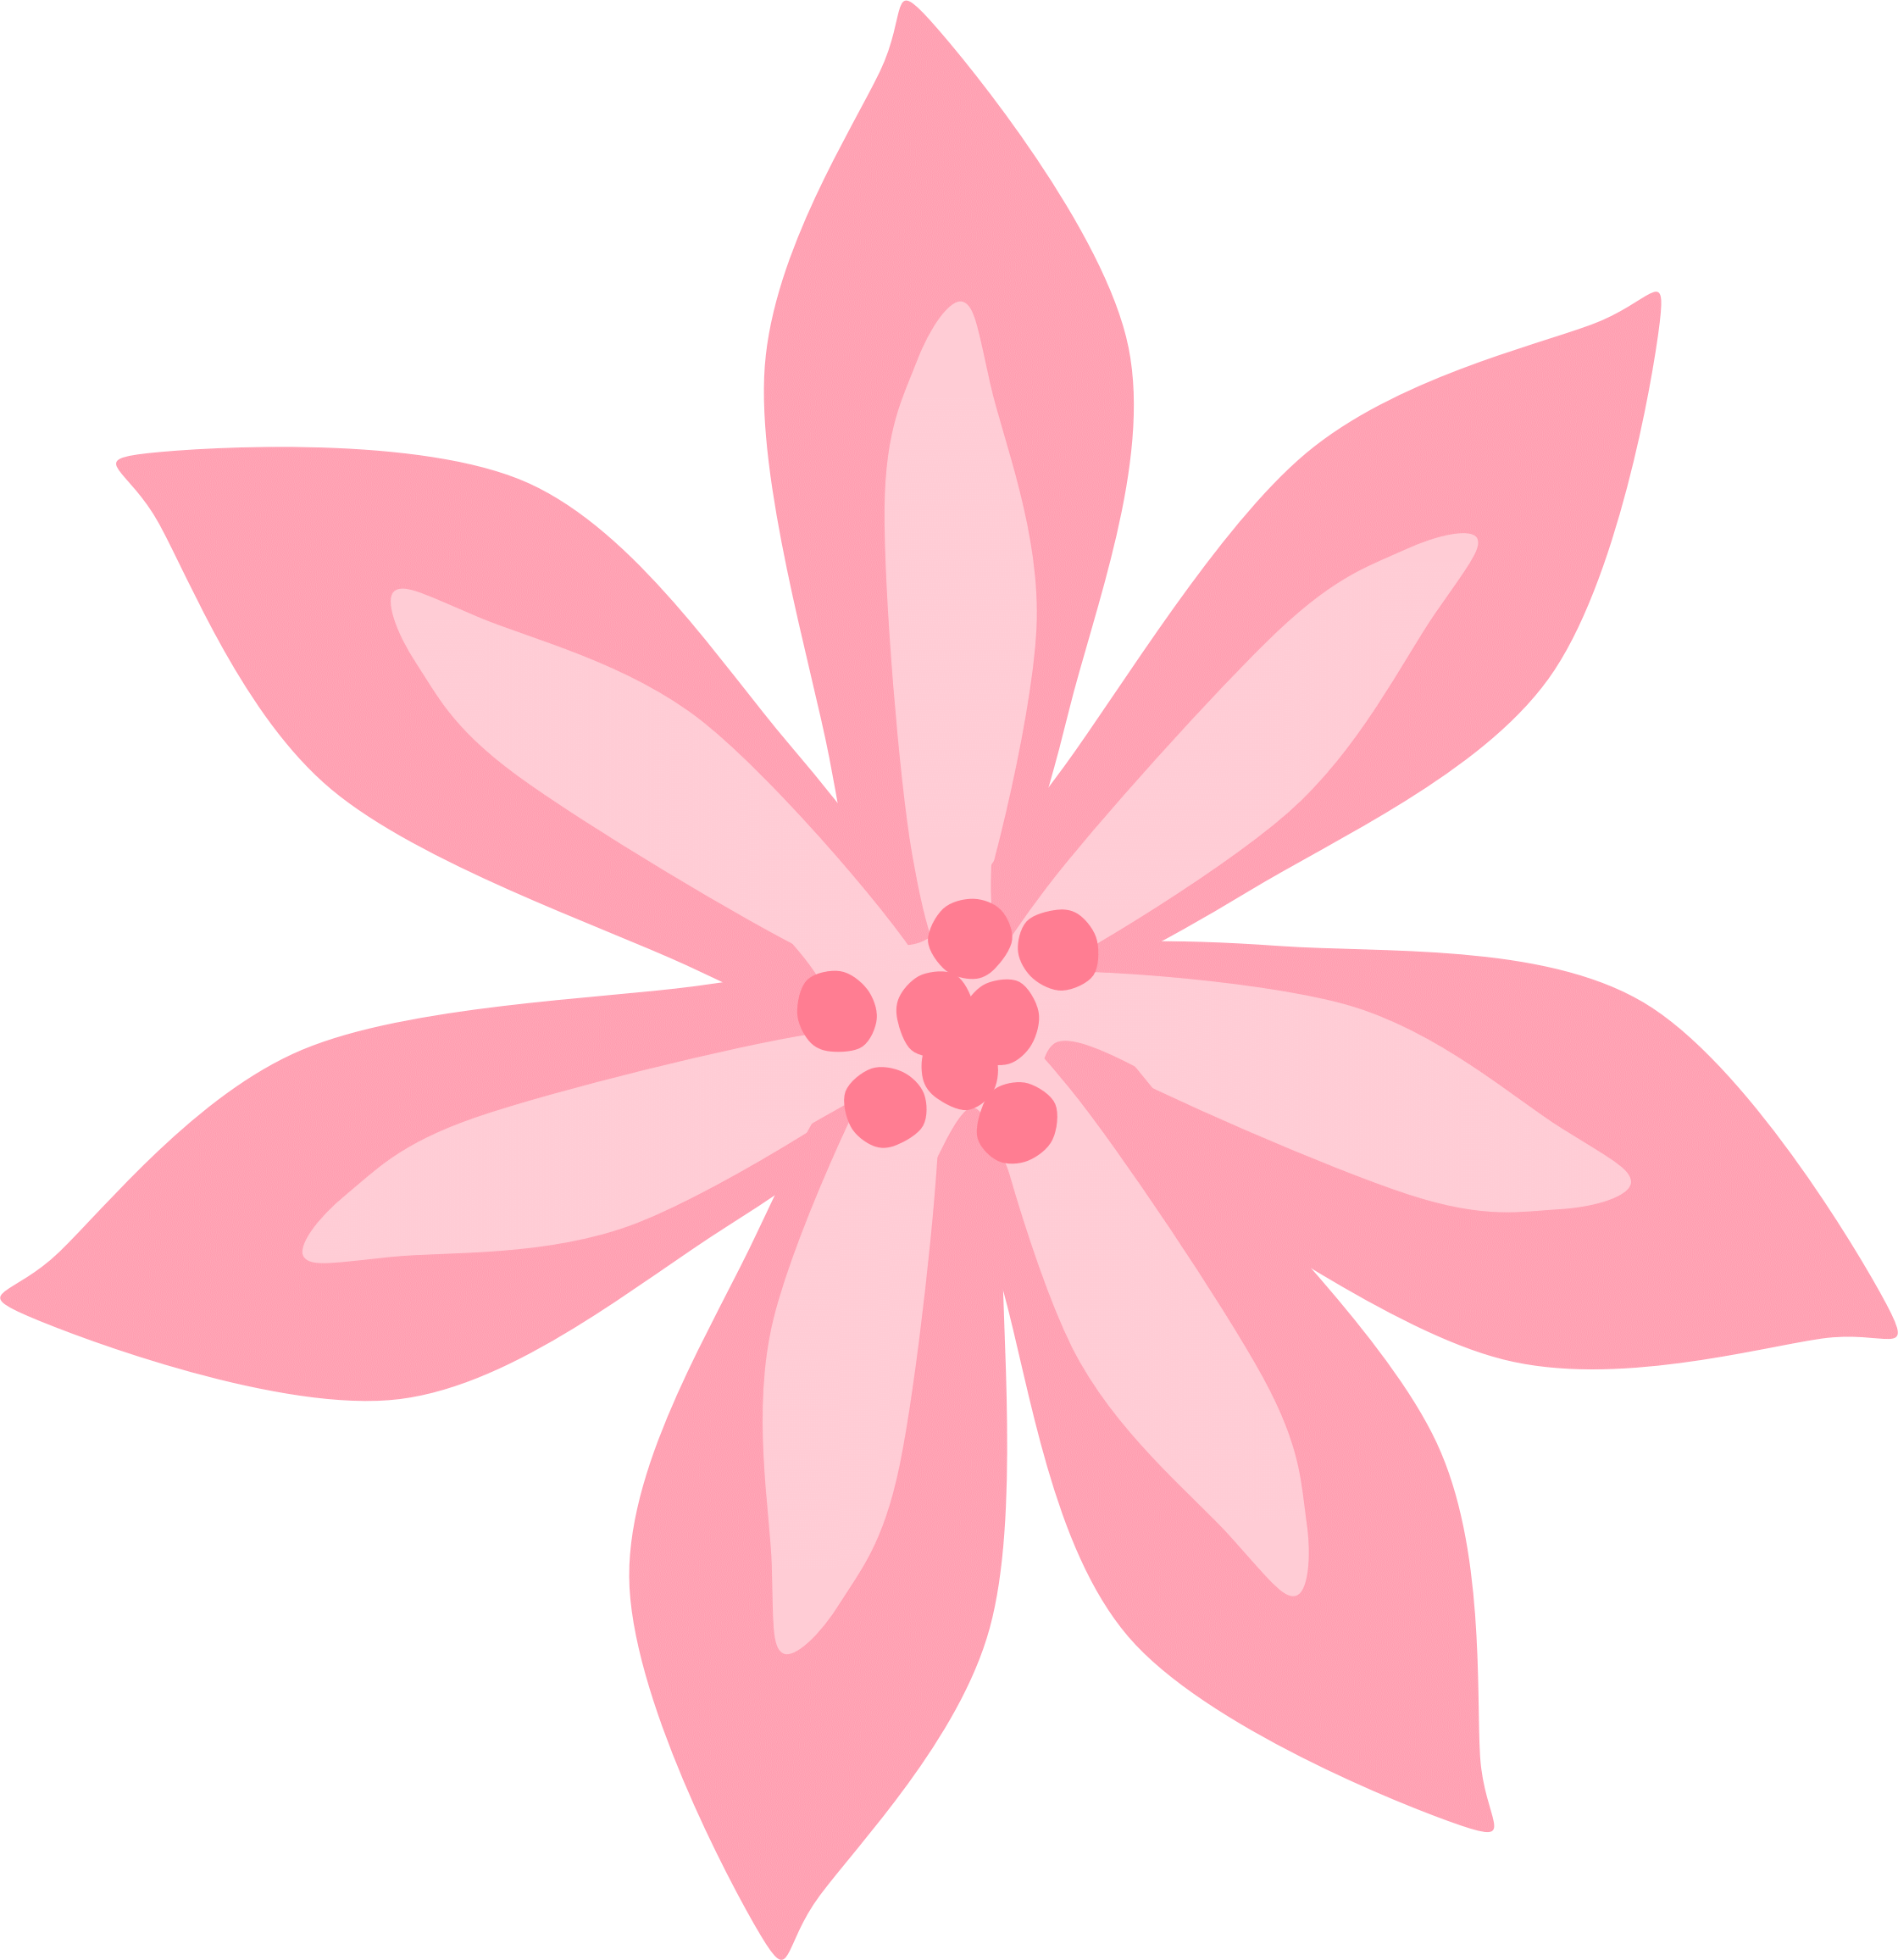 Pink lily clipart svg transparent stock Pink Lily Cliparts - Cliparts Zone svg transparent stock